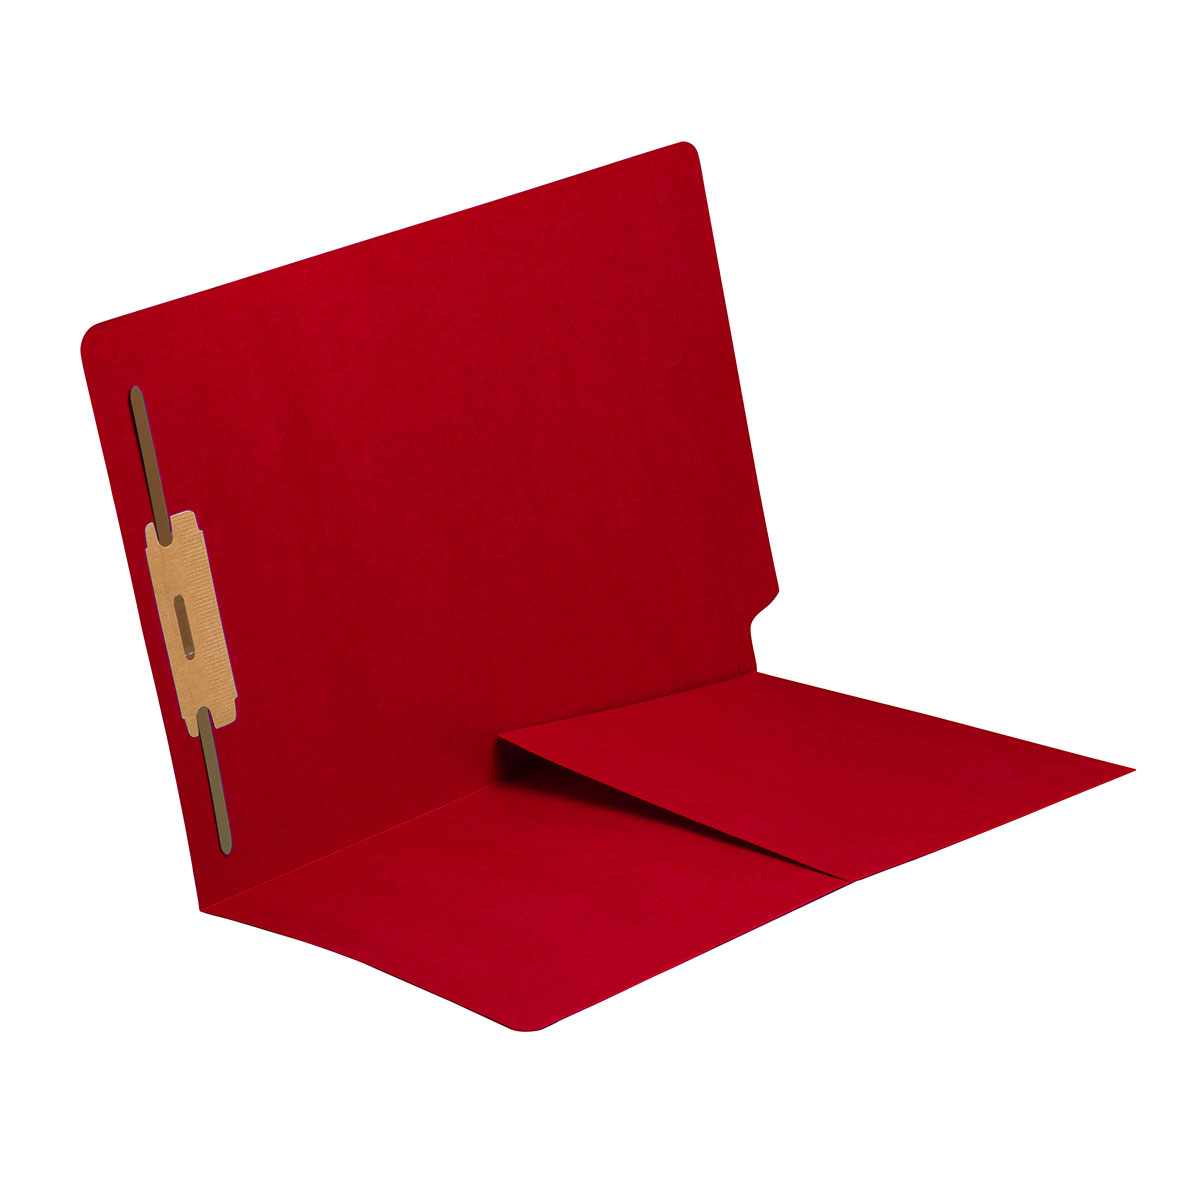 S-9010-RED - 14 pt Red Folders, Full Cut End Tab, Letter Size, 1/2 Pocket Inside Front, Fastener Pos #1 (Box of 50)